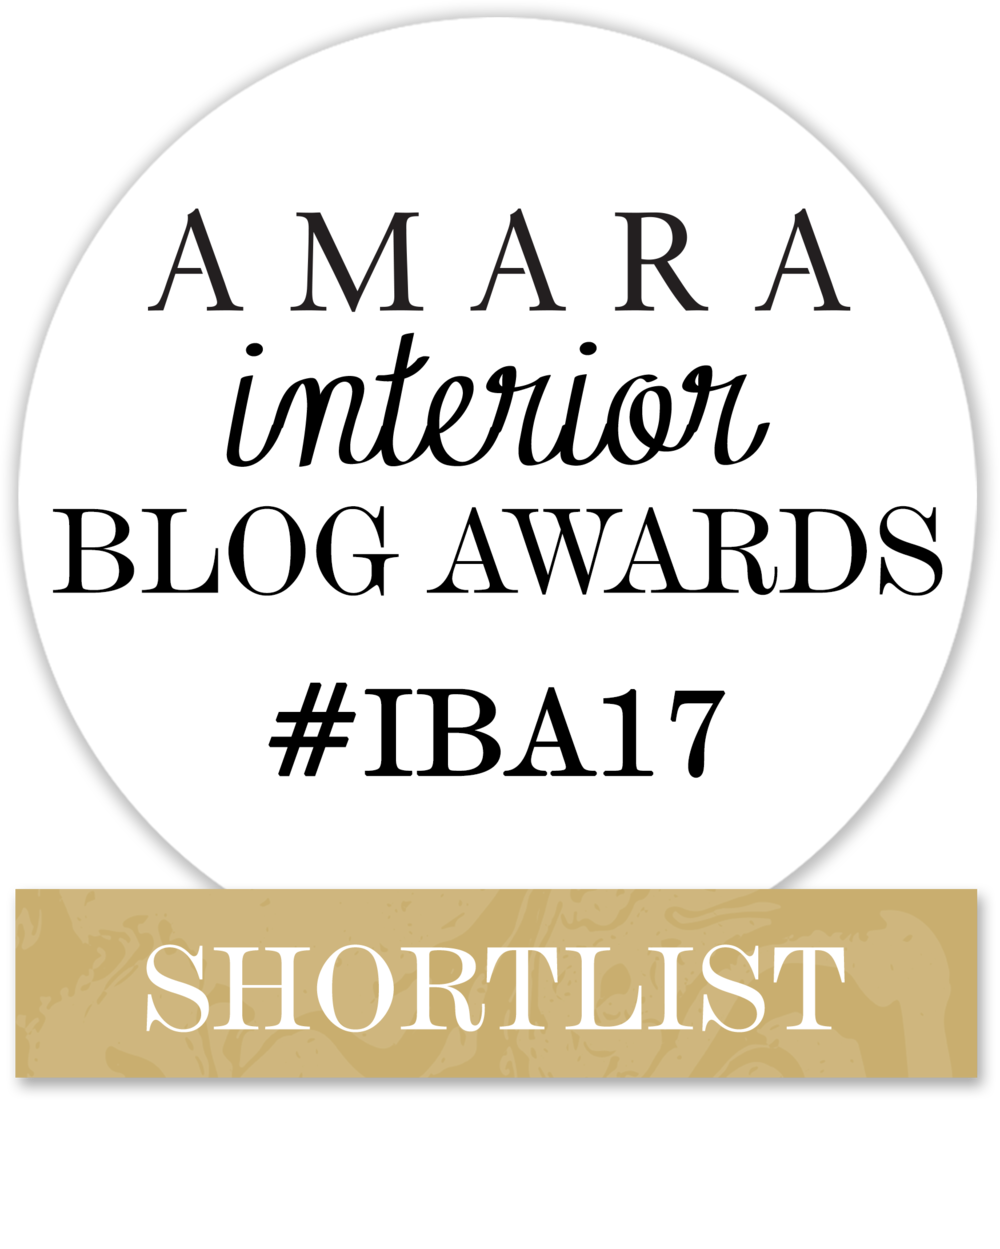 Amara interior blog awards 2017 shortlist